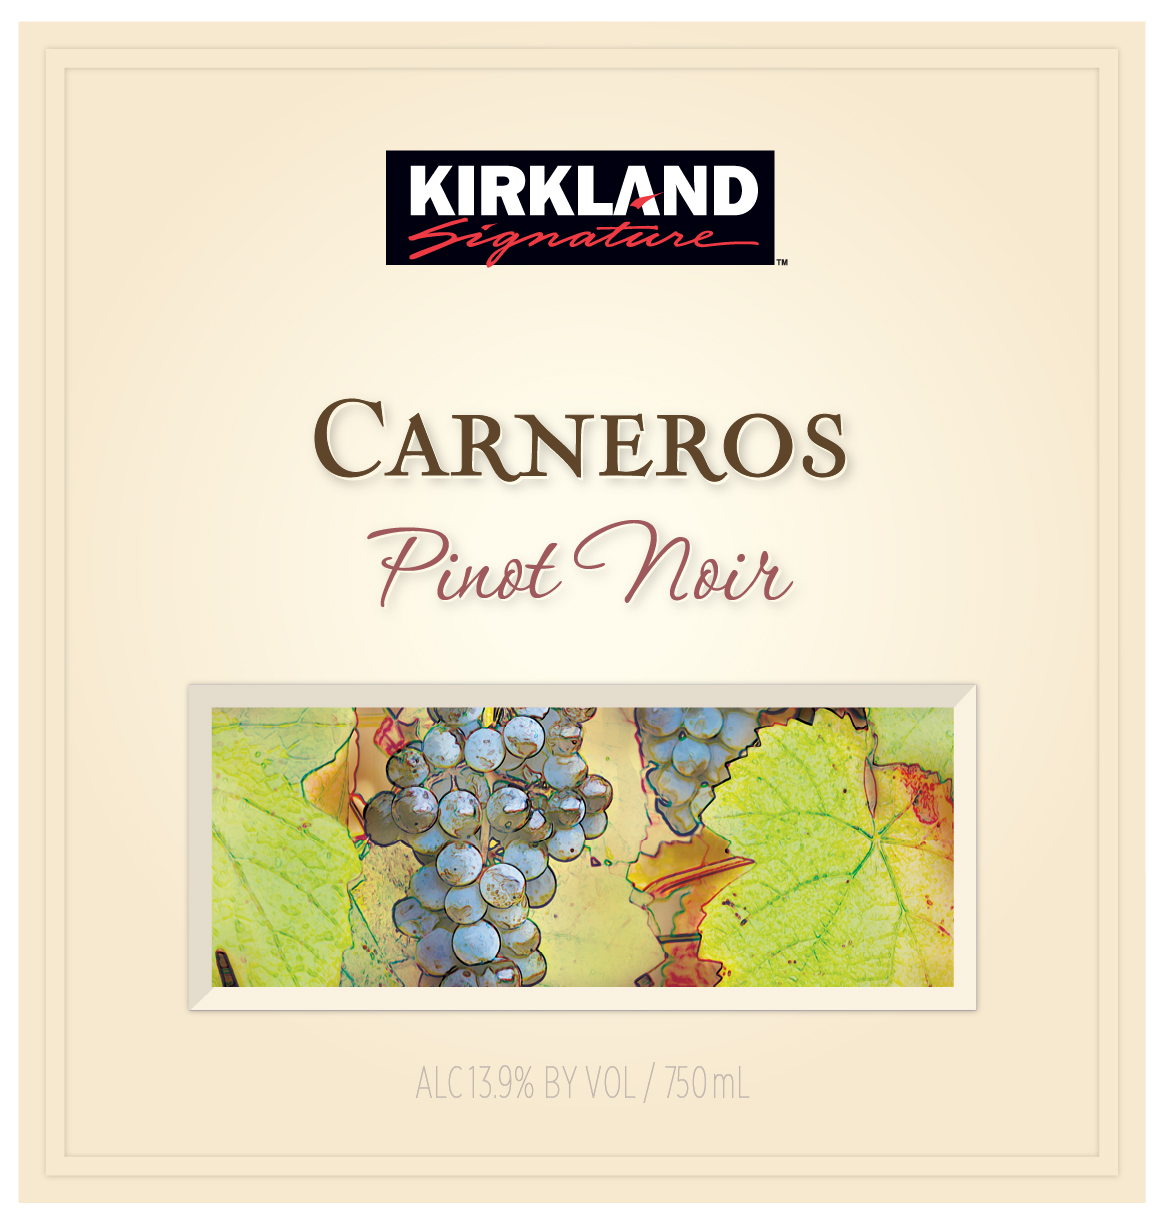 """The Kirkland Signature Carneros Pinot Noir is a blend of richness and elegance.  The Napa Valley edge of Carneros provides aromas of ripe cherry and rhubarb counterbalanced by darker, black fruit and forest floor notes from the western slopes.  This is a classic Carneros Pinot Noir displaying rich aromas and complex flavors woven together with a hint of spice from French oak barrels."" ALISON CROWE, Winemaker."